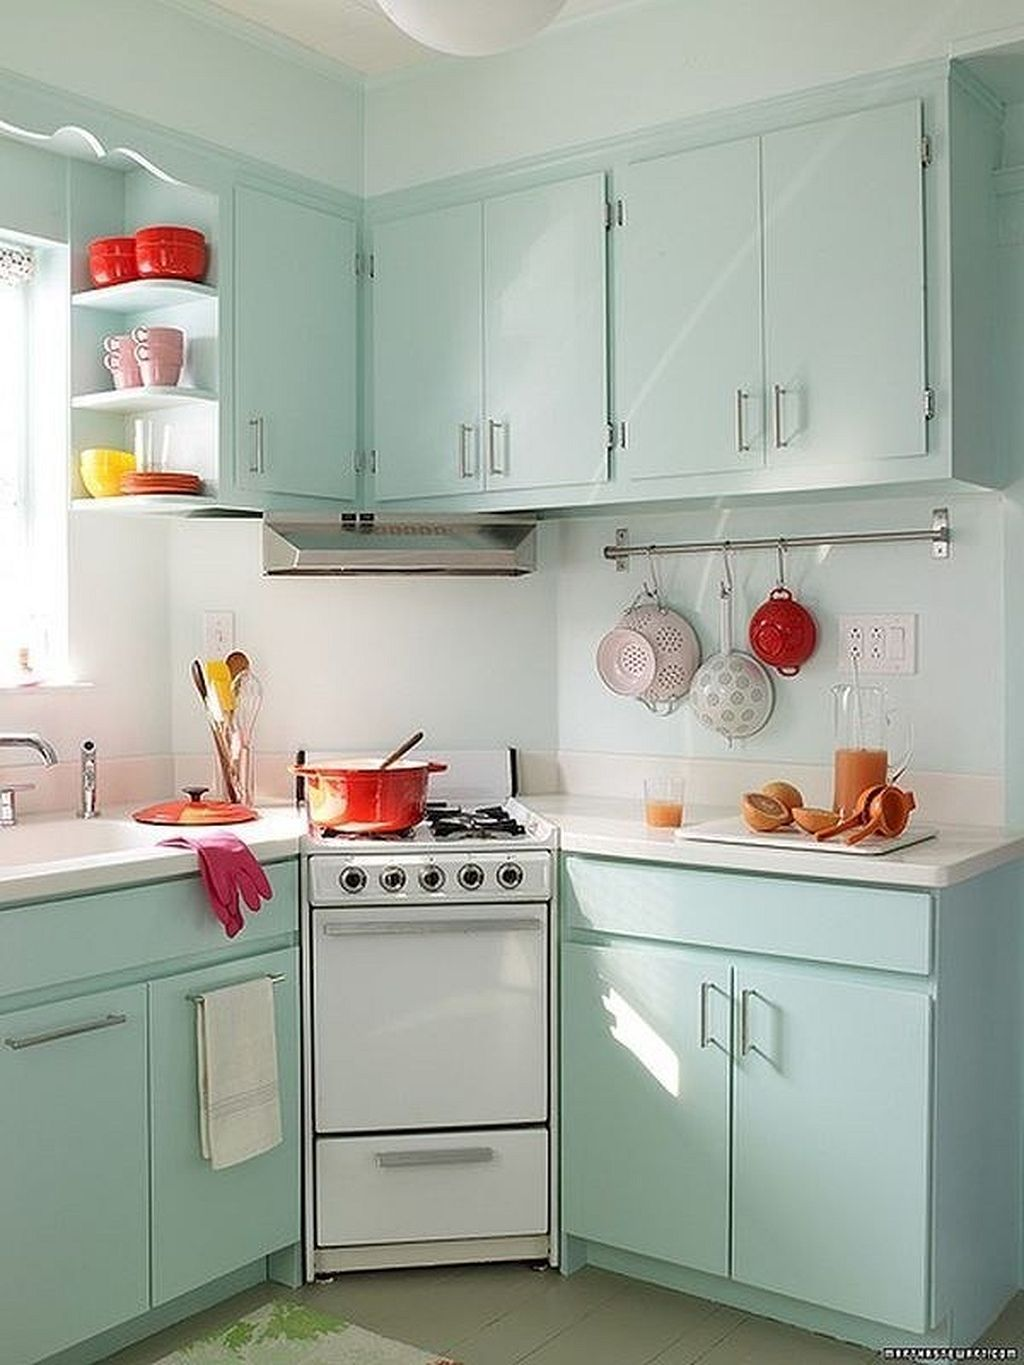 20 Tiny House Arrangements Ideas Retro Kitchen Small Kitchen Kitchen Inspirations